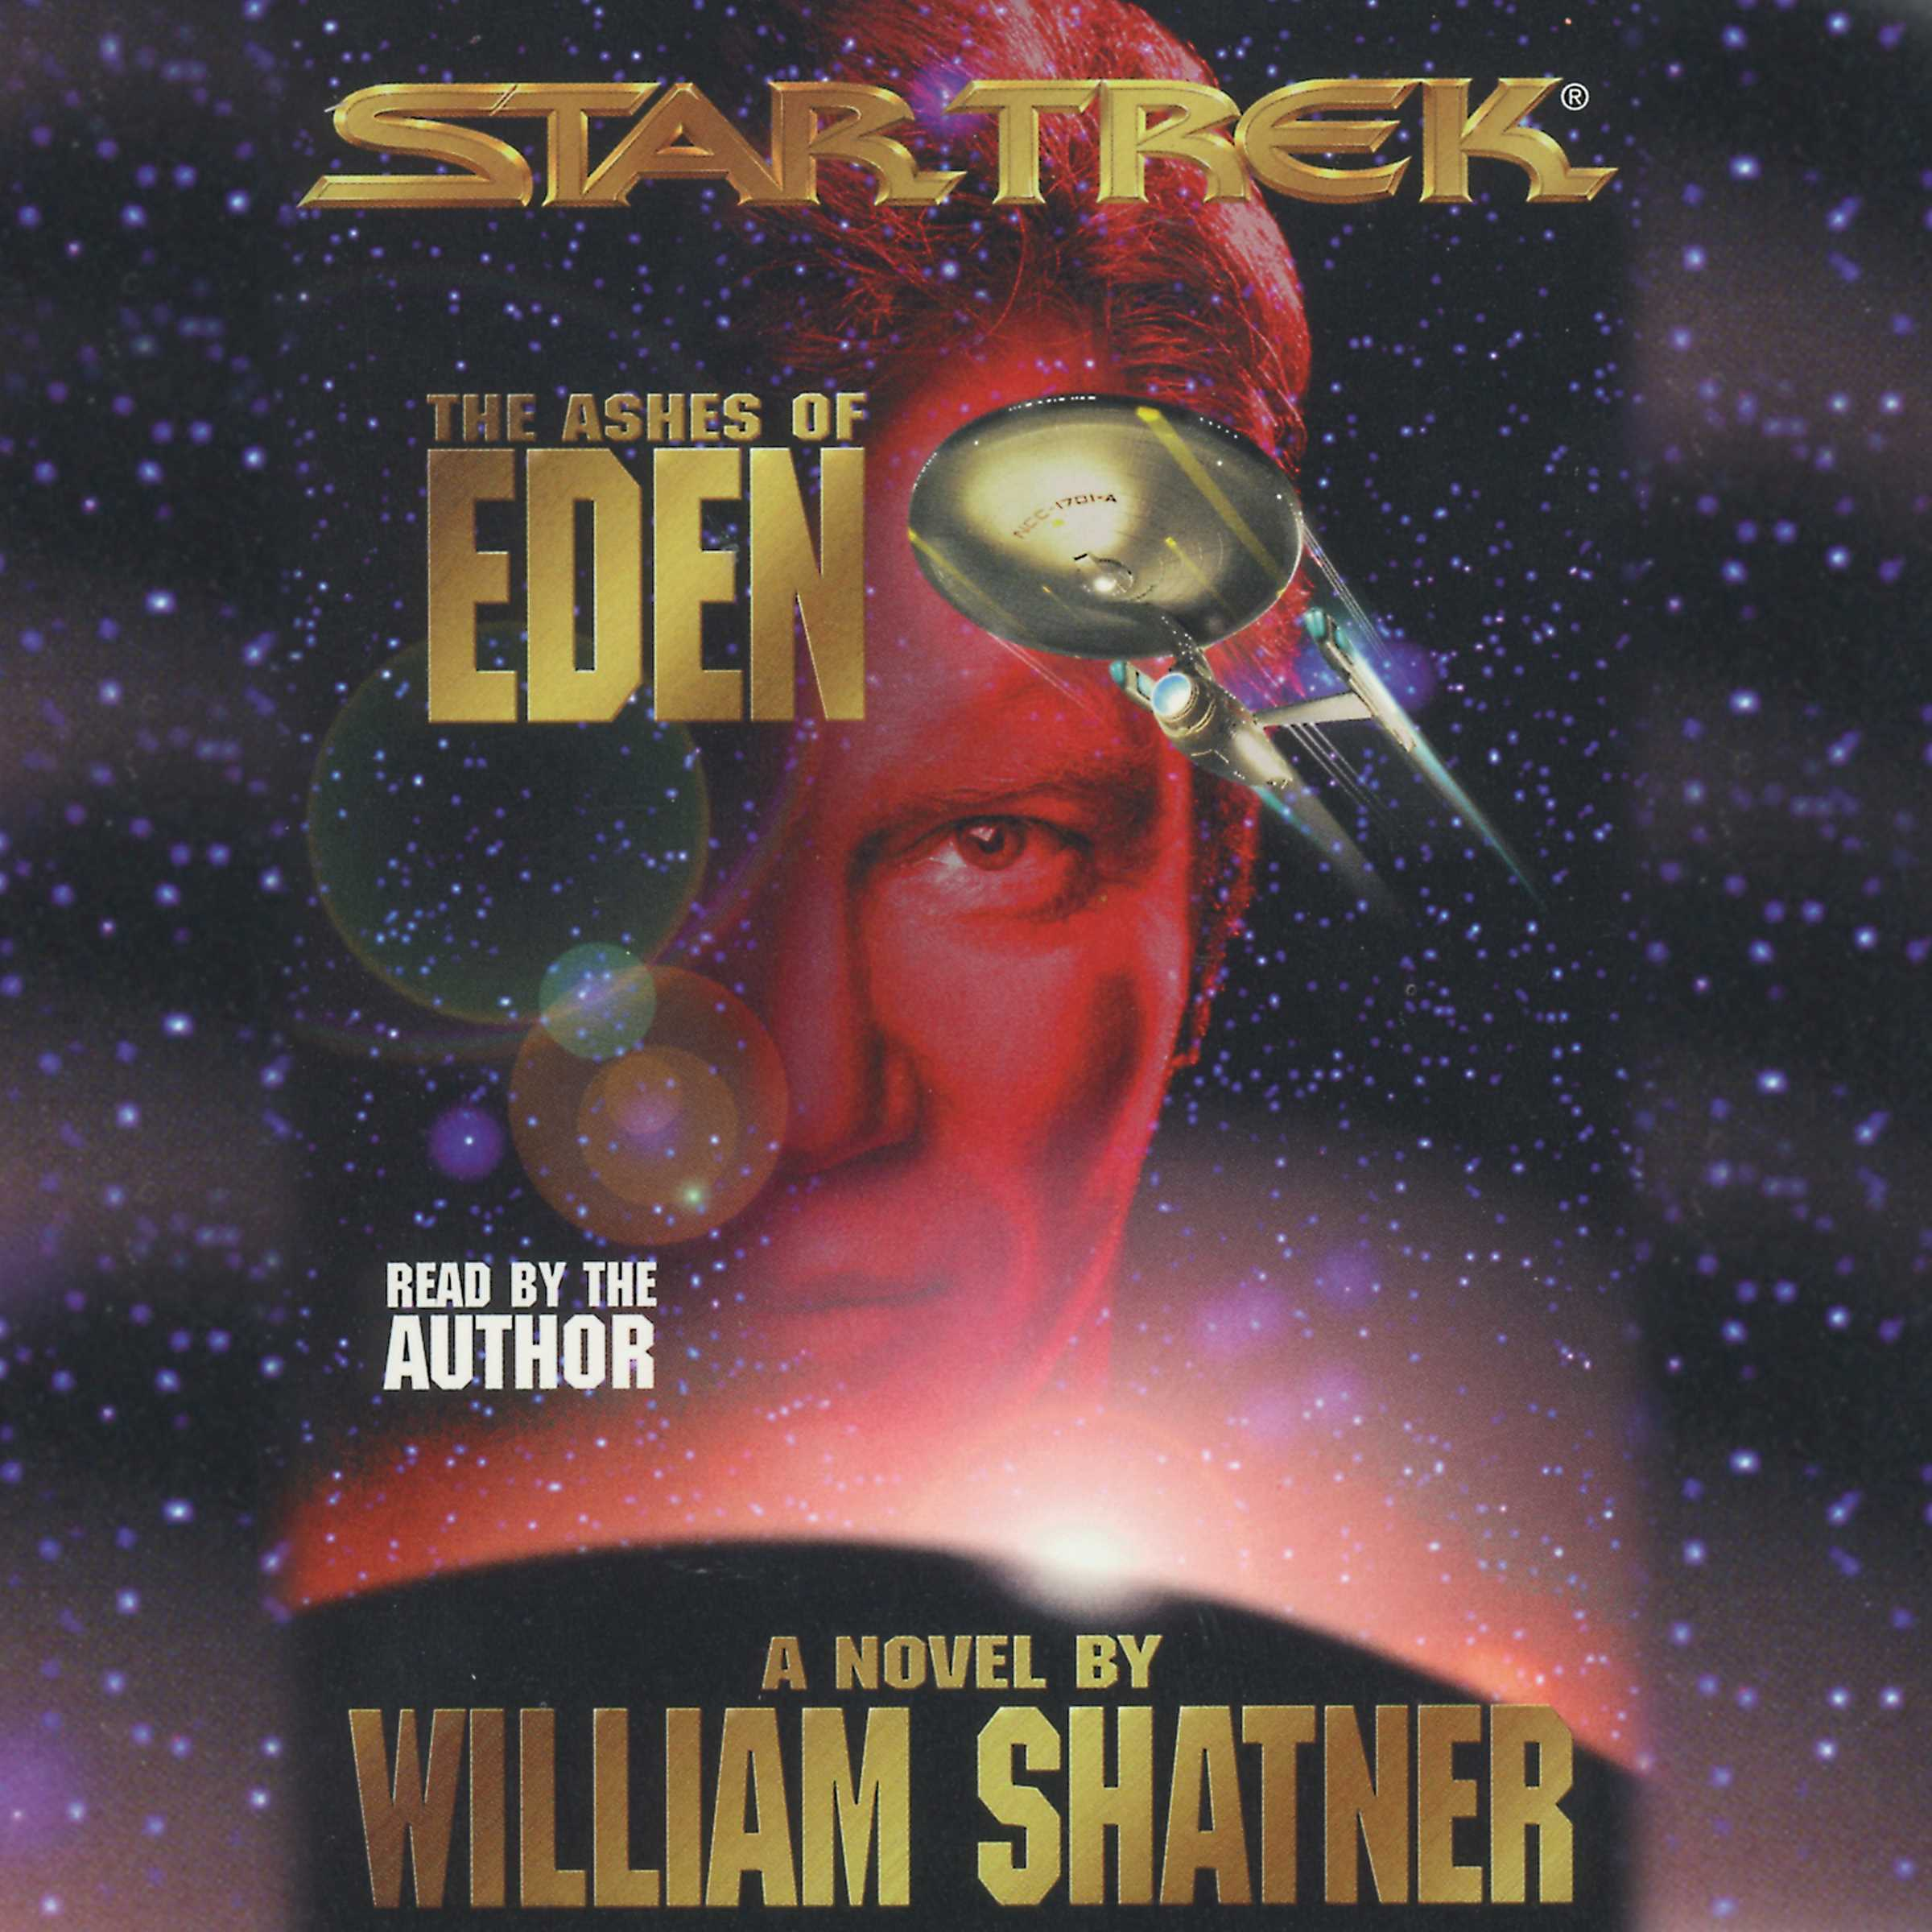 Star trek ashes of eden audiobook by william shatner official star trek ashes of eden 9780743546799 hr fandeluxe Images